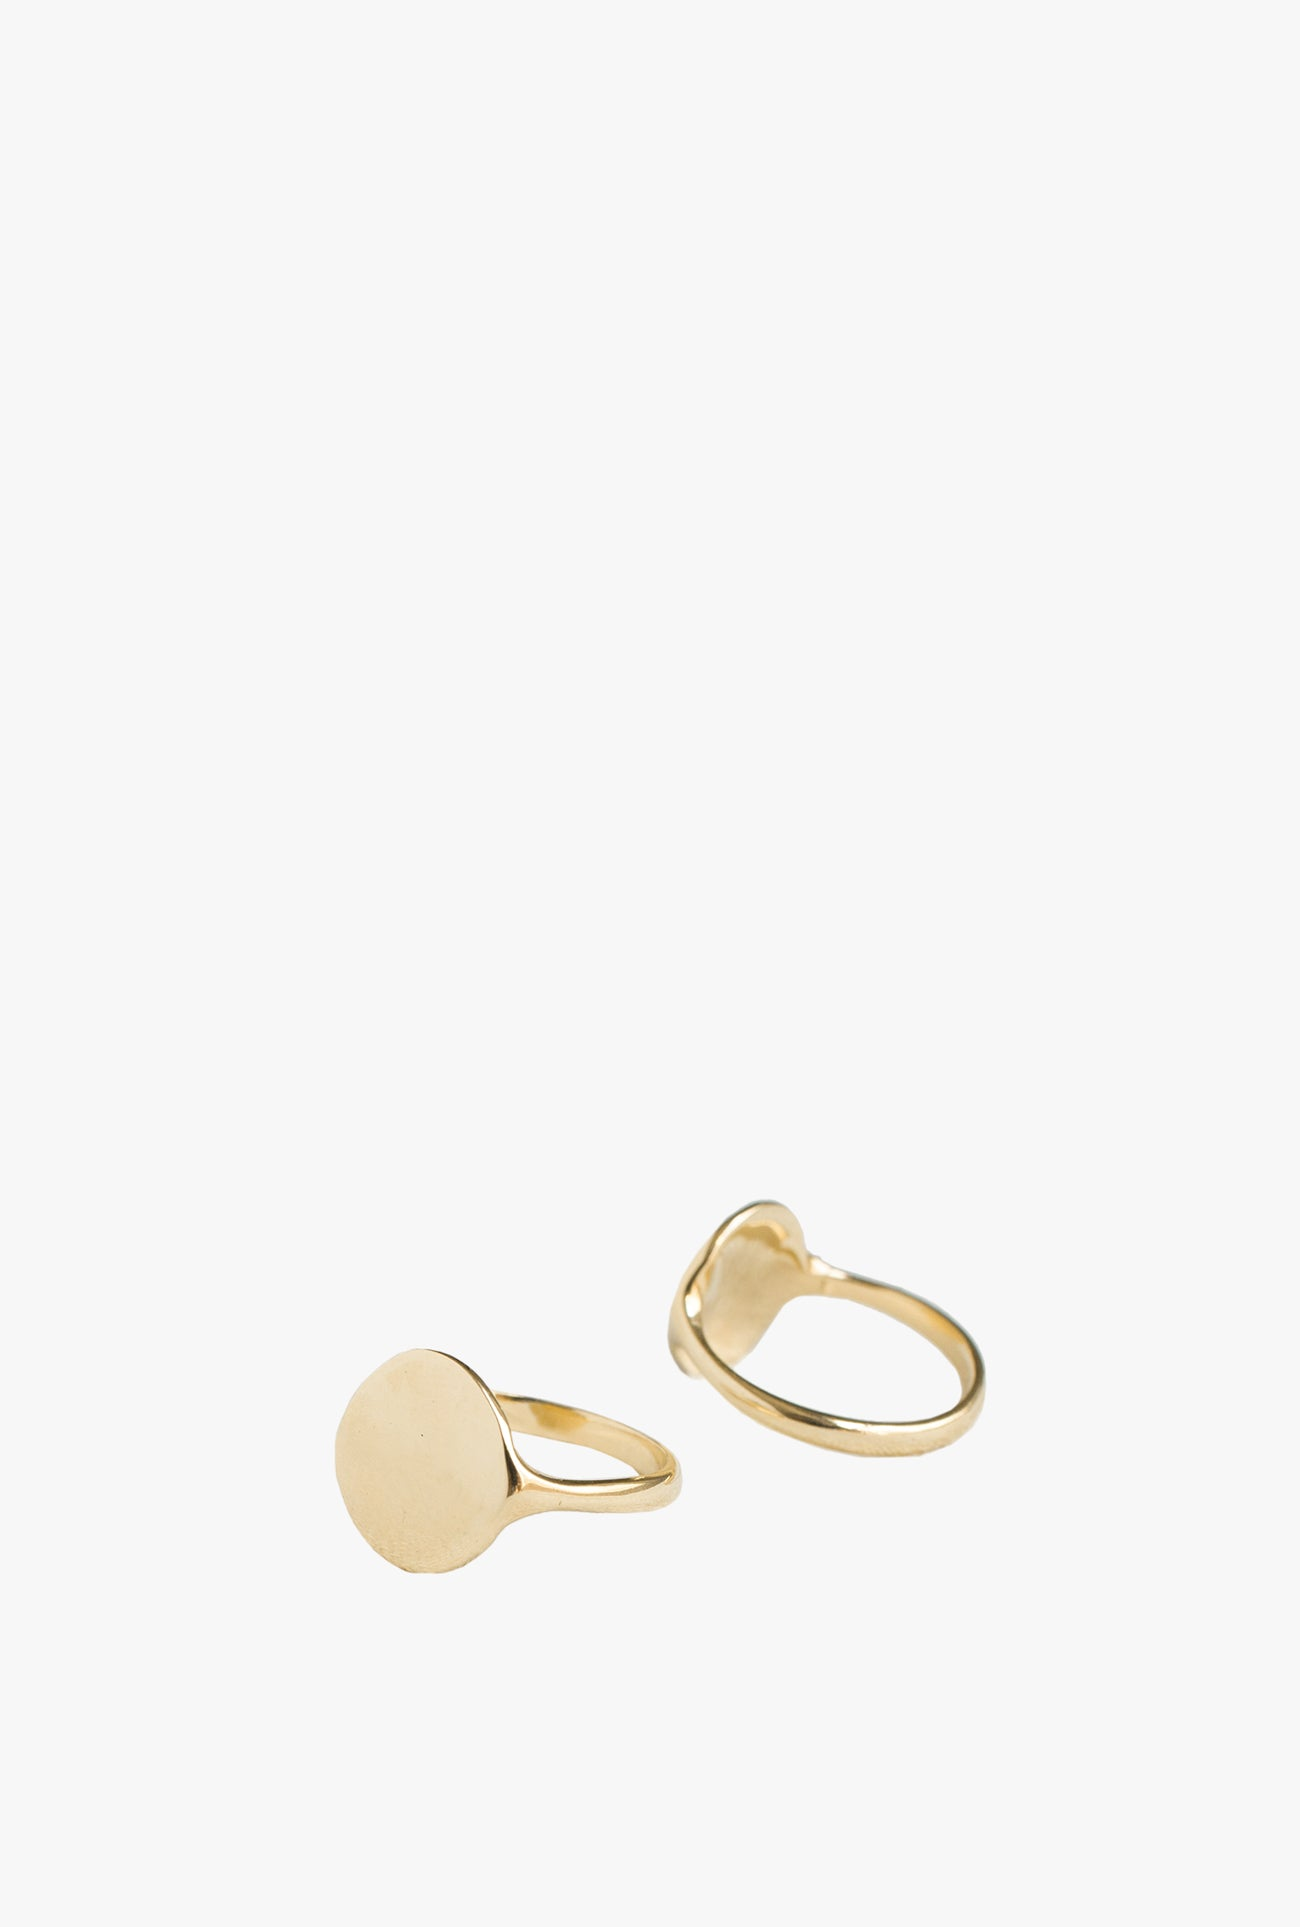 Carlyle Signet Ring